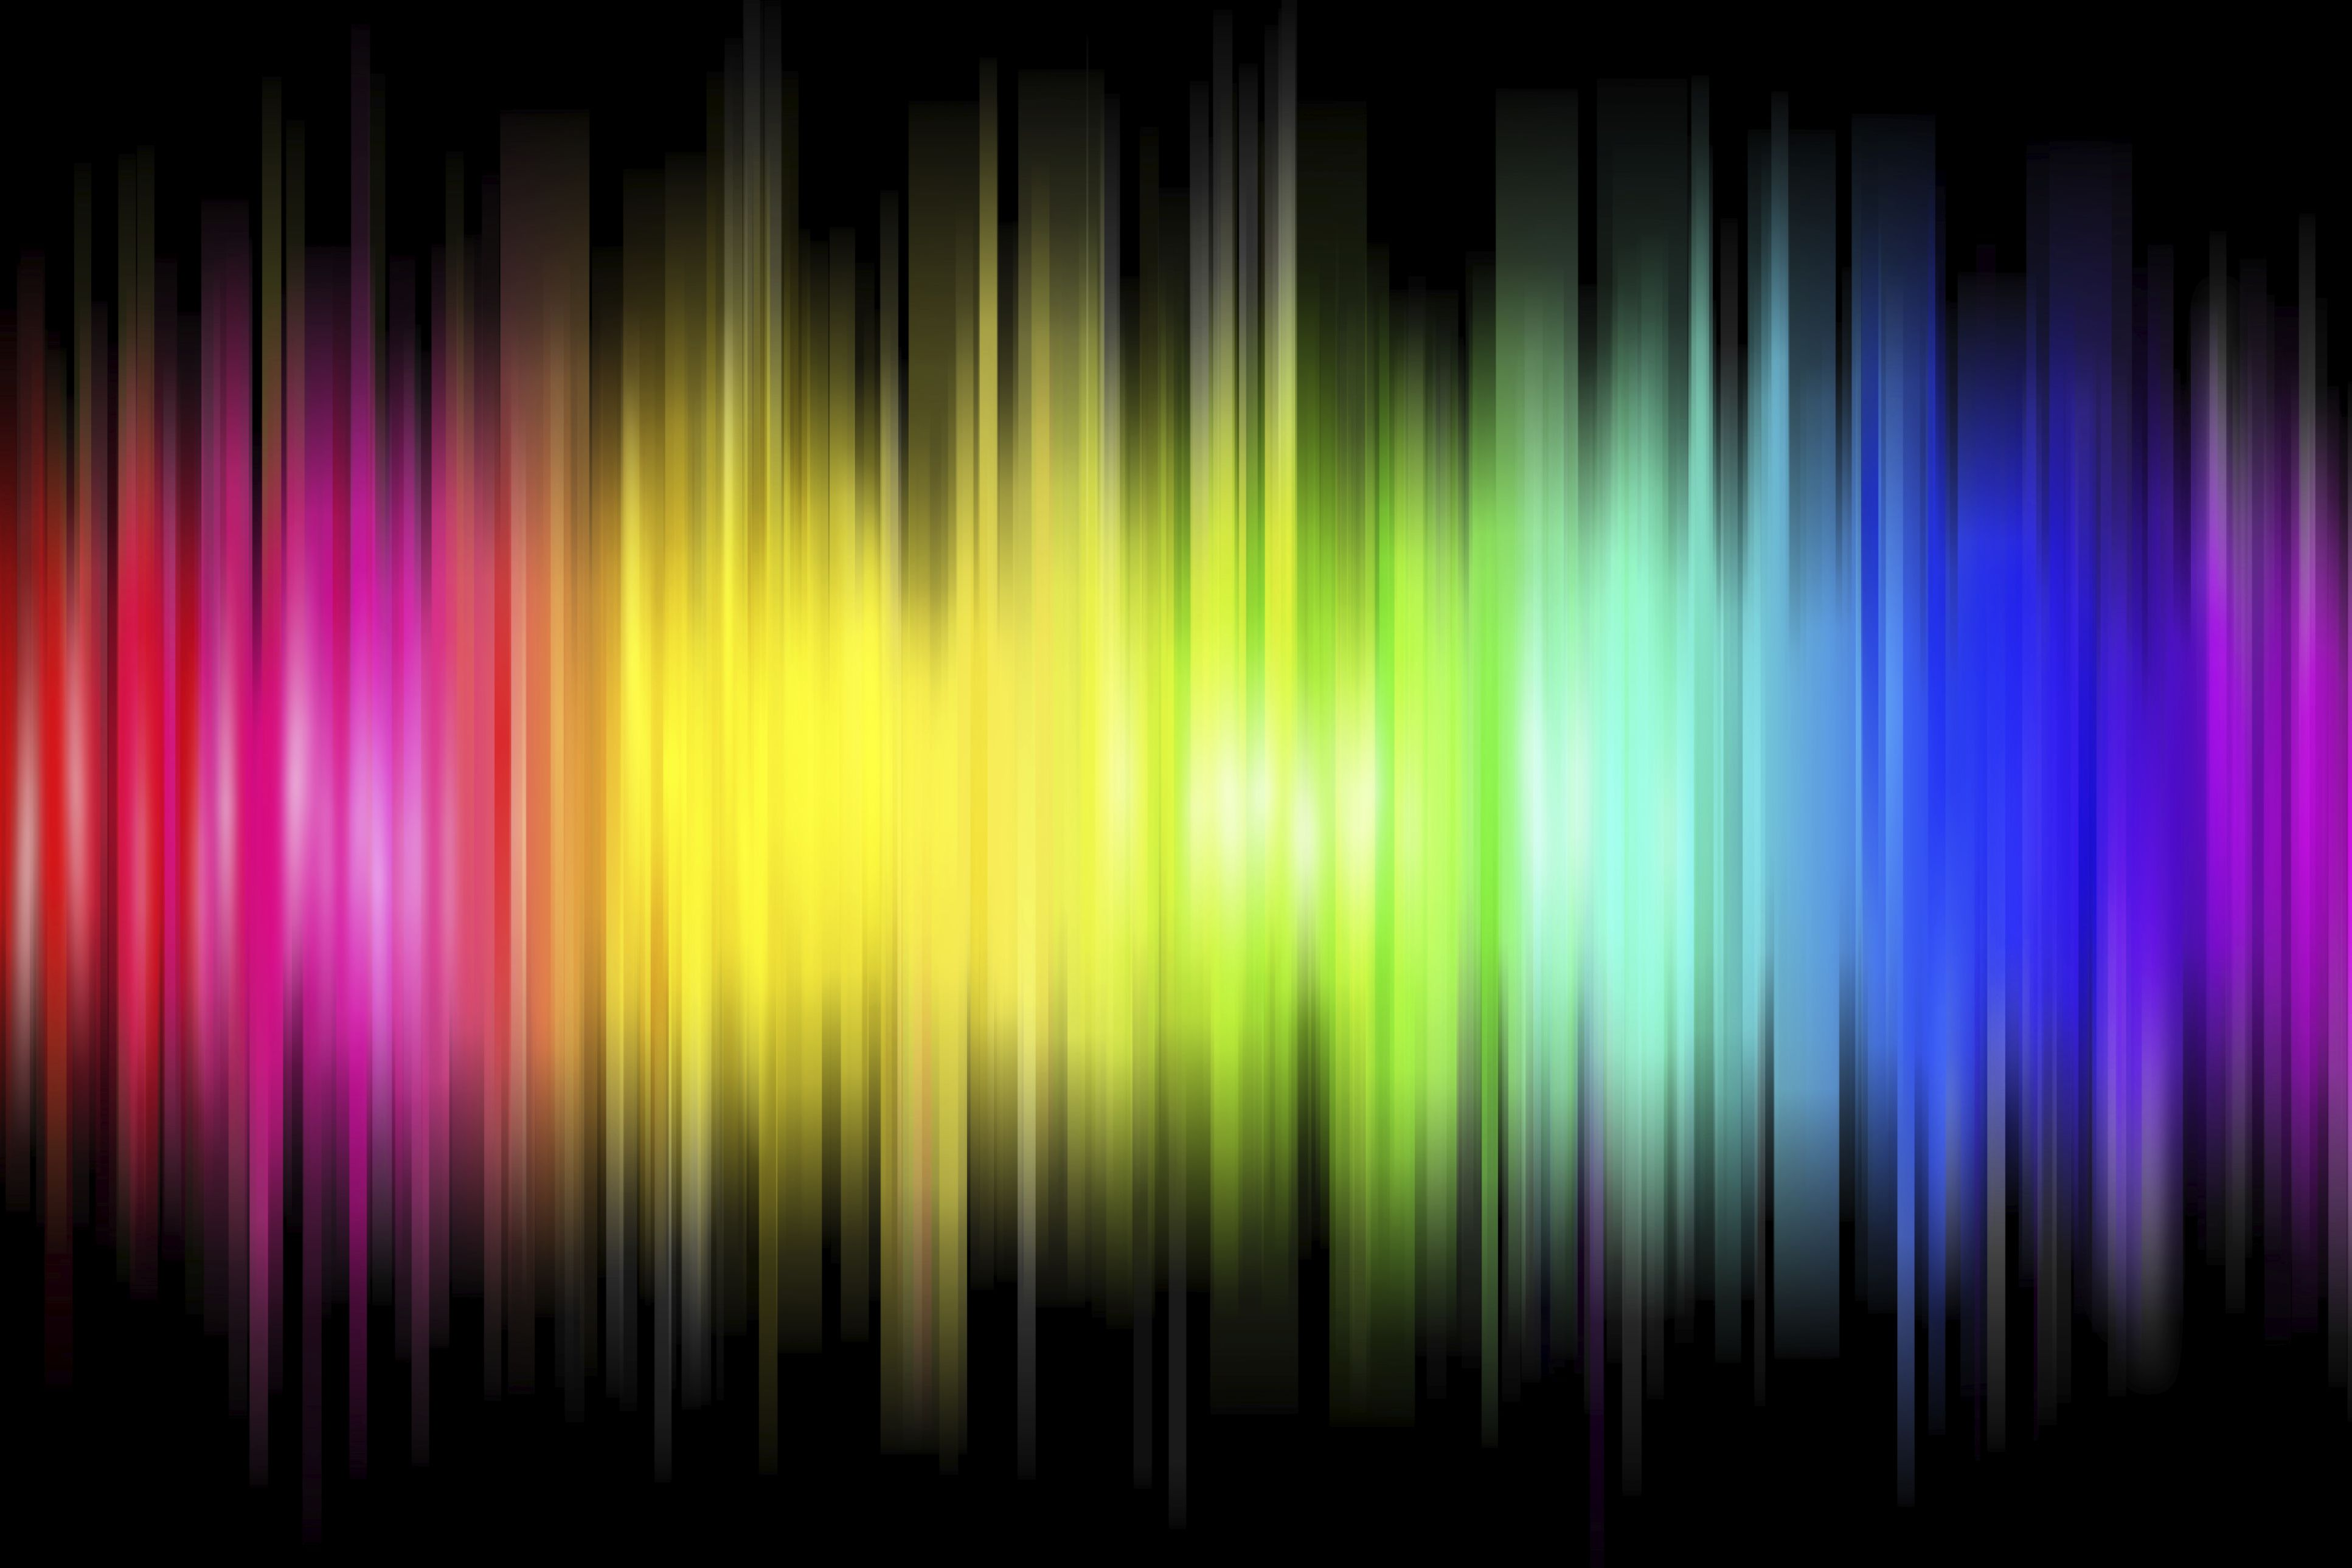 Understand the Visible Spectrum (Wavelengths and Colors)